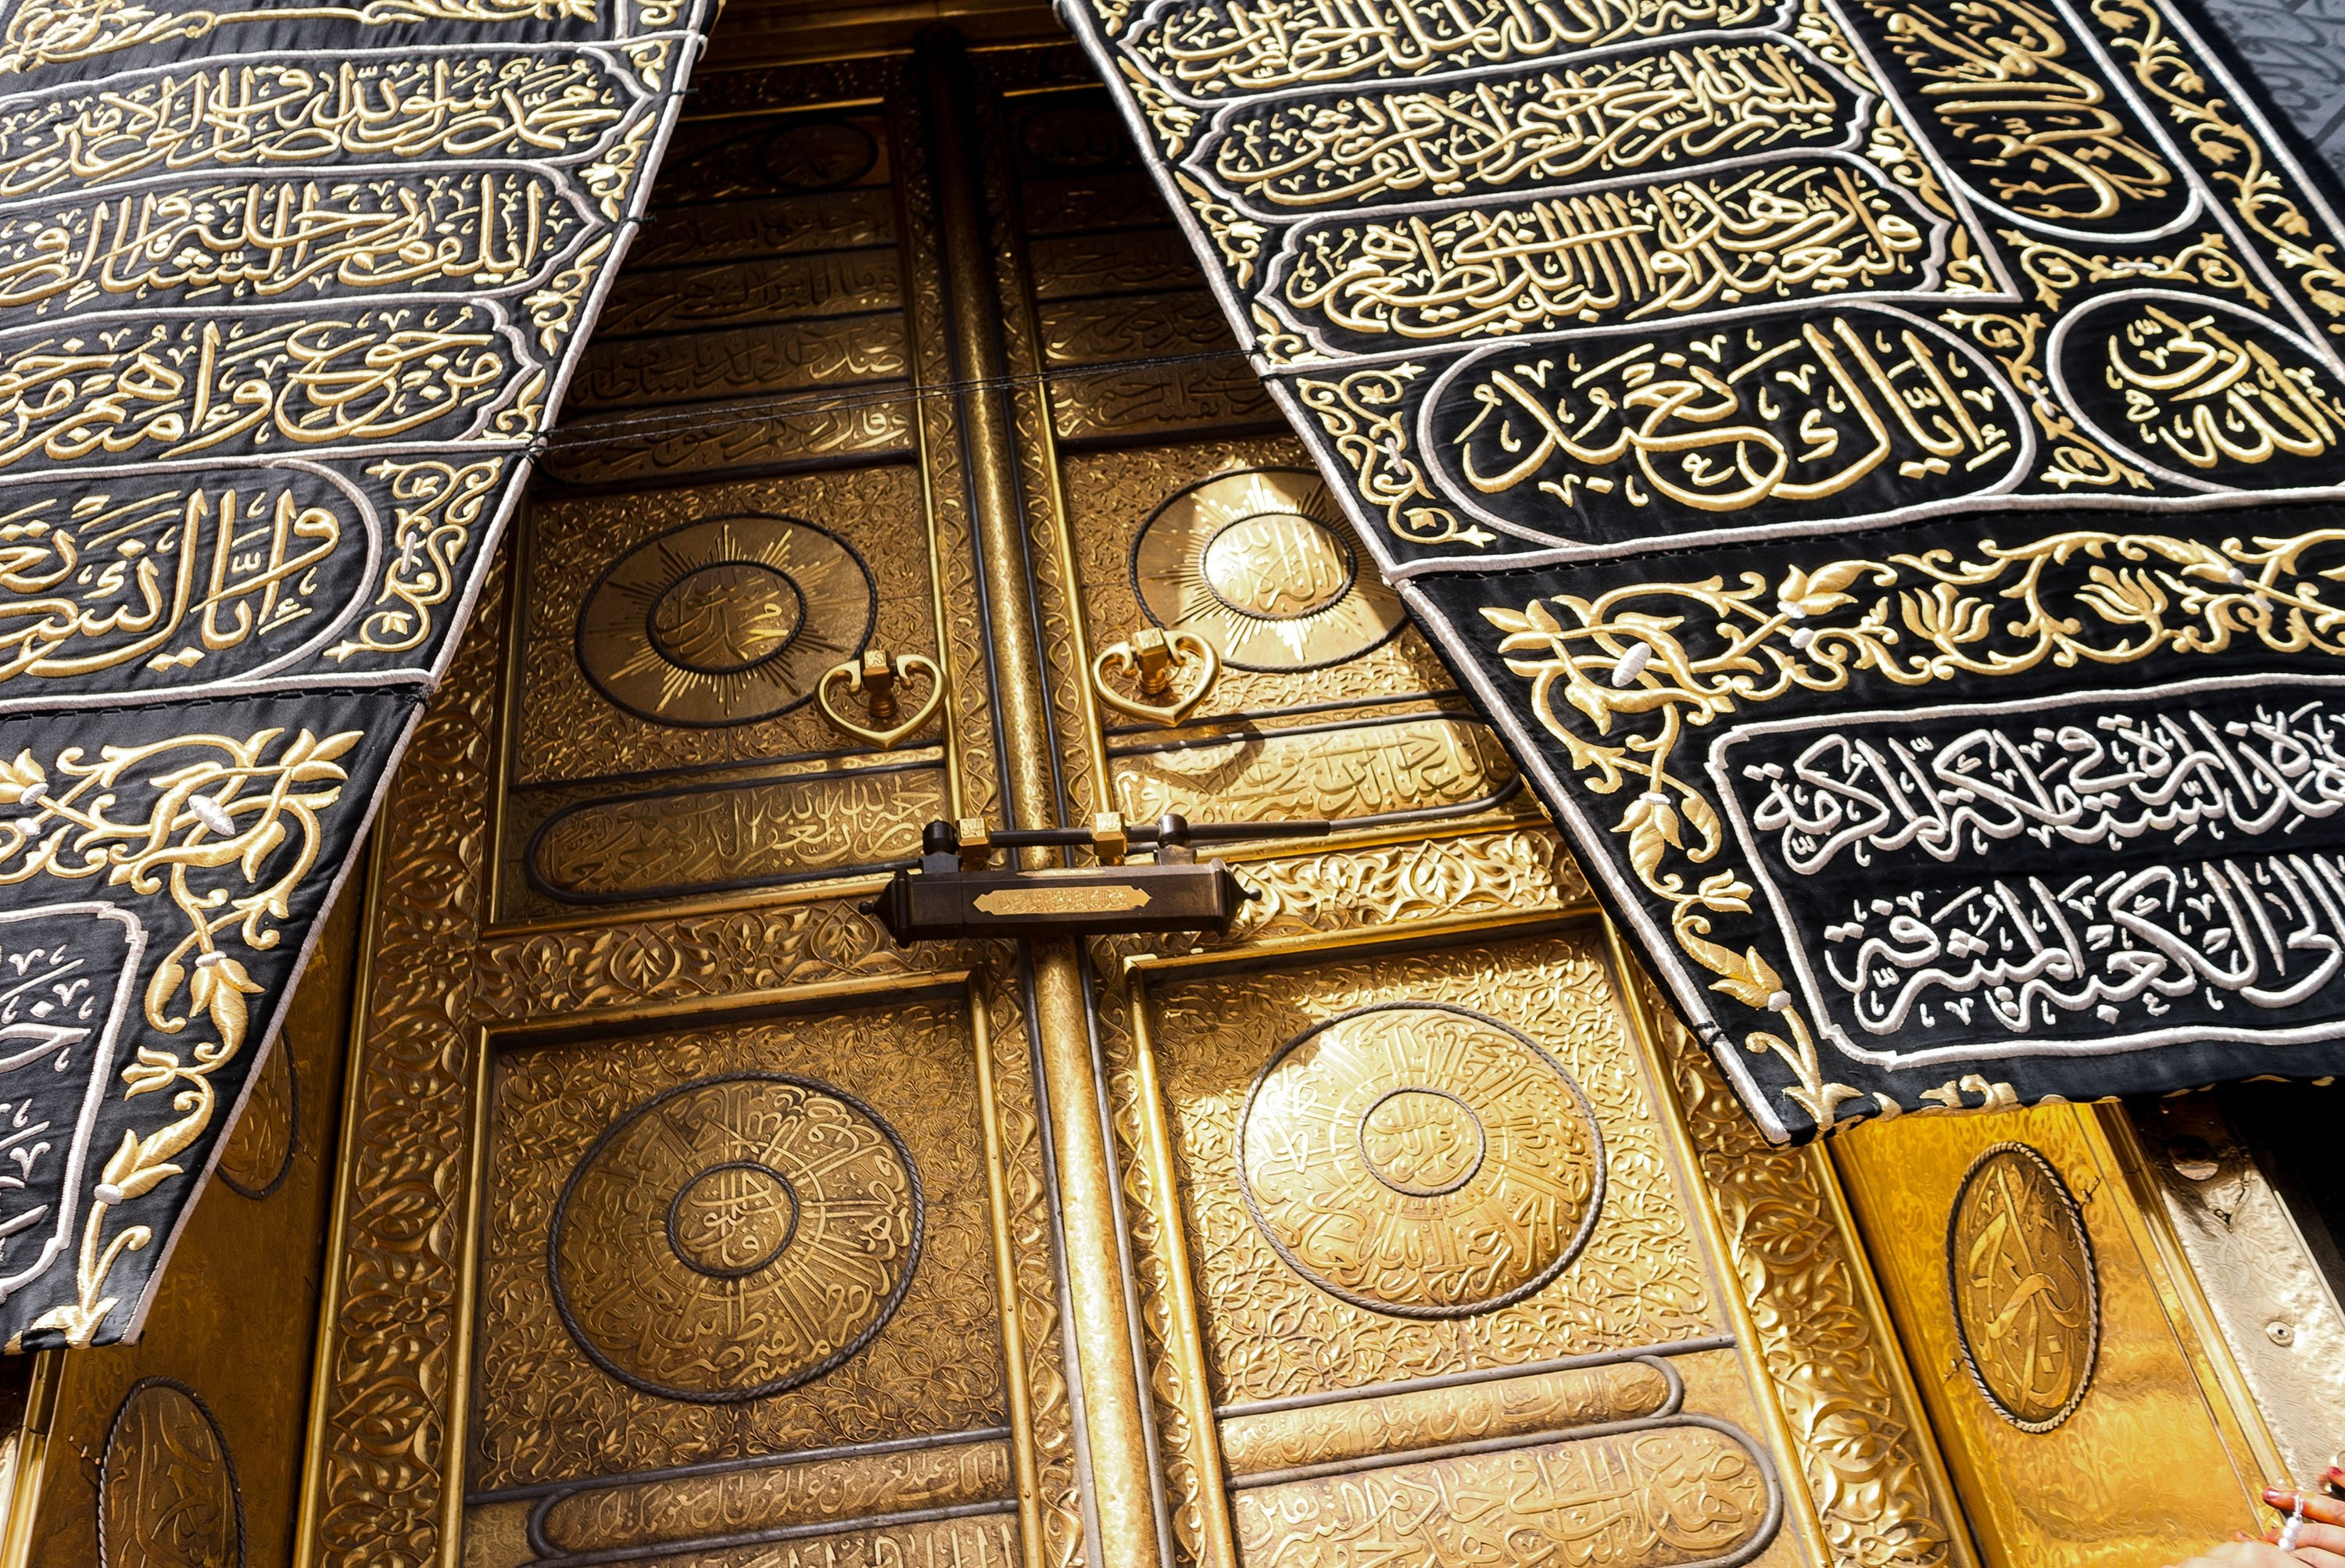 The golden doorsof the Kaaba, the holiest site in Islam, is covered with kiswah,which is the cloth that covers the Kaaba, atMasjid al-Haram, Mecca, Saudi Arabia, May1, 2018. (Shutterstock Photo)